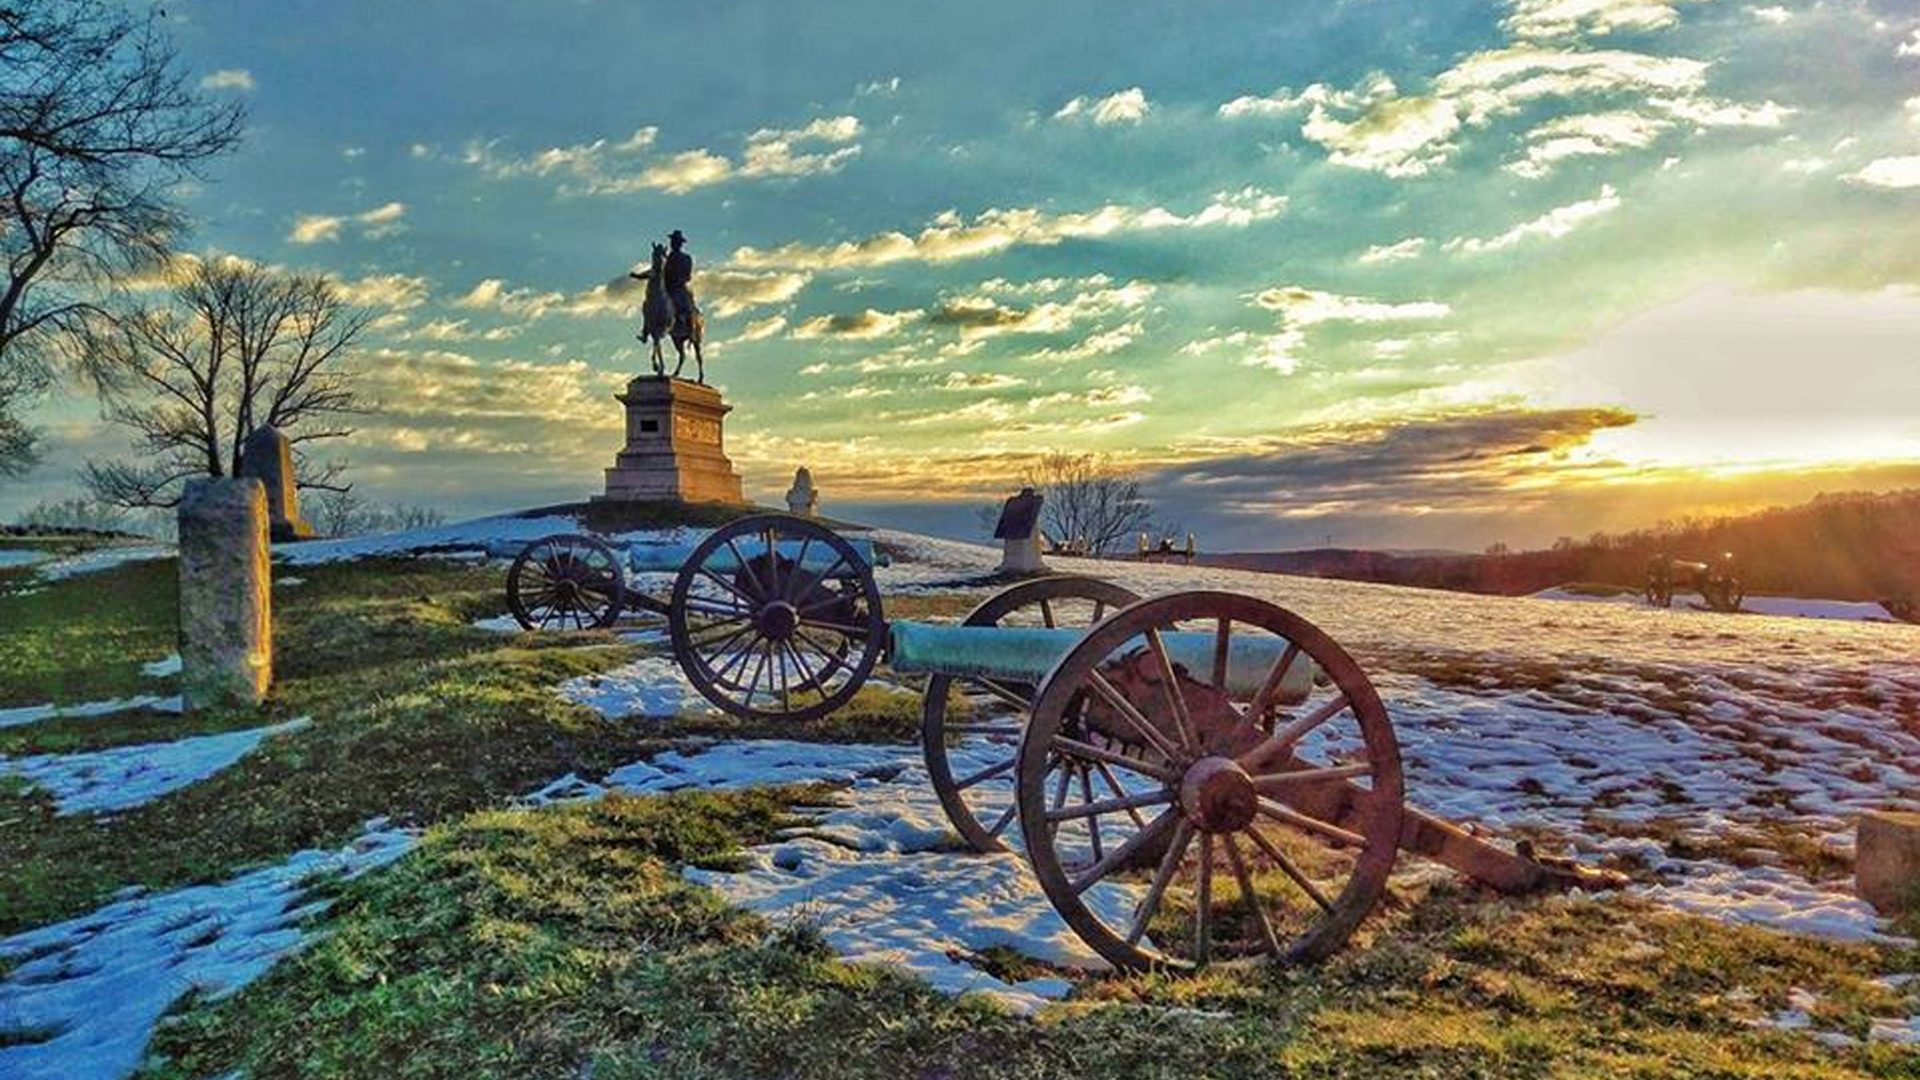 Gettysburg National Military Park image by Jody Shealer